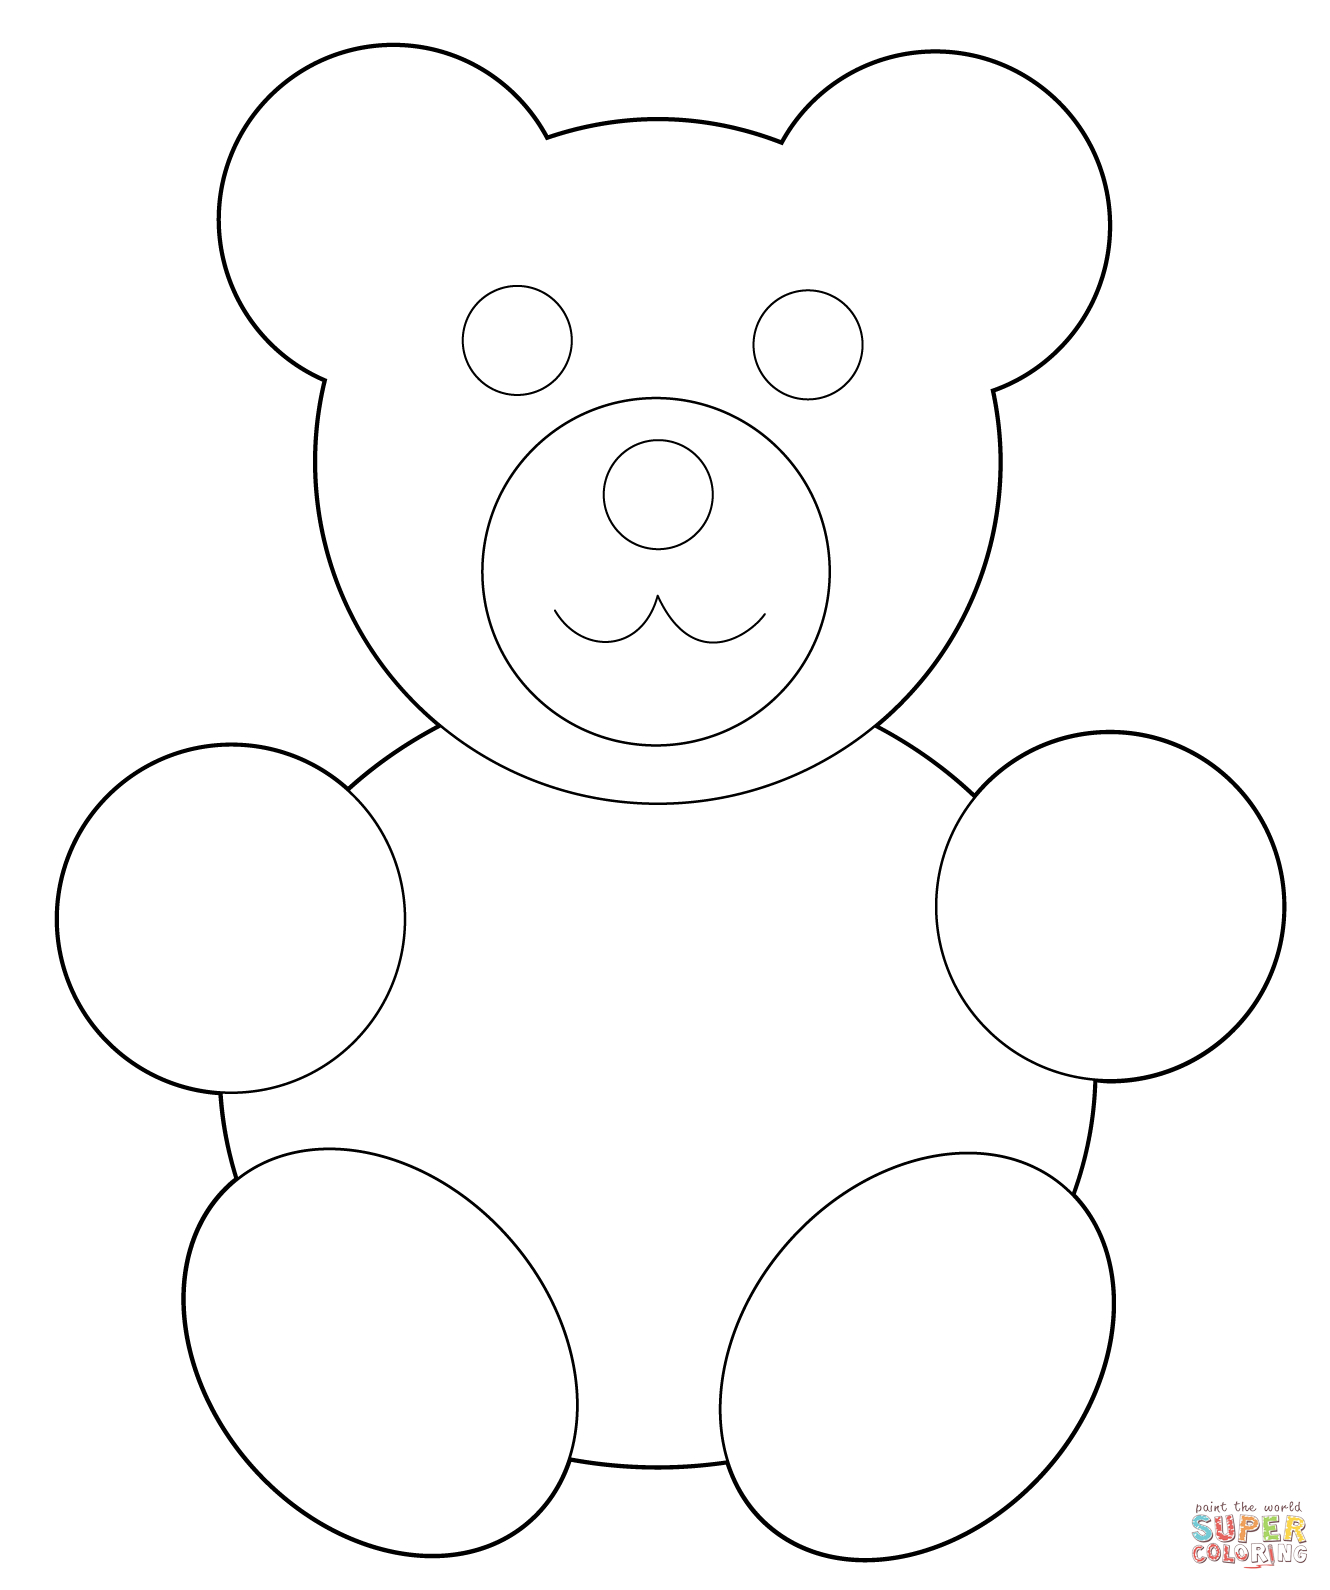 1330x1590 Simple Drawing Of A Teddy Bear